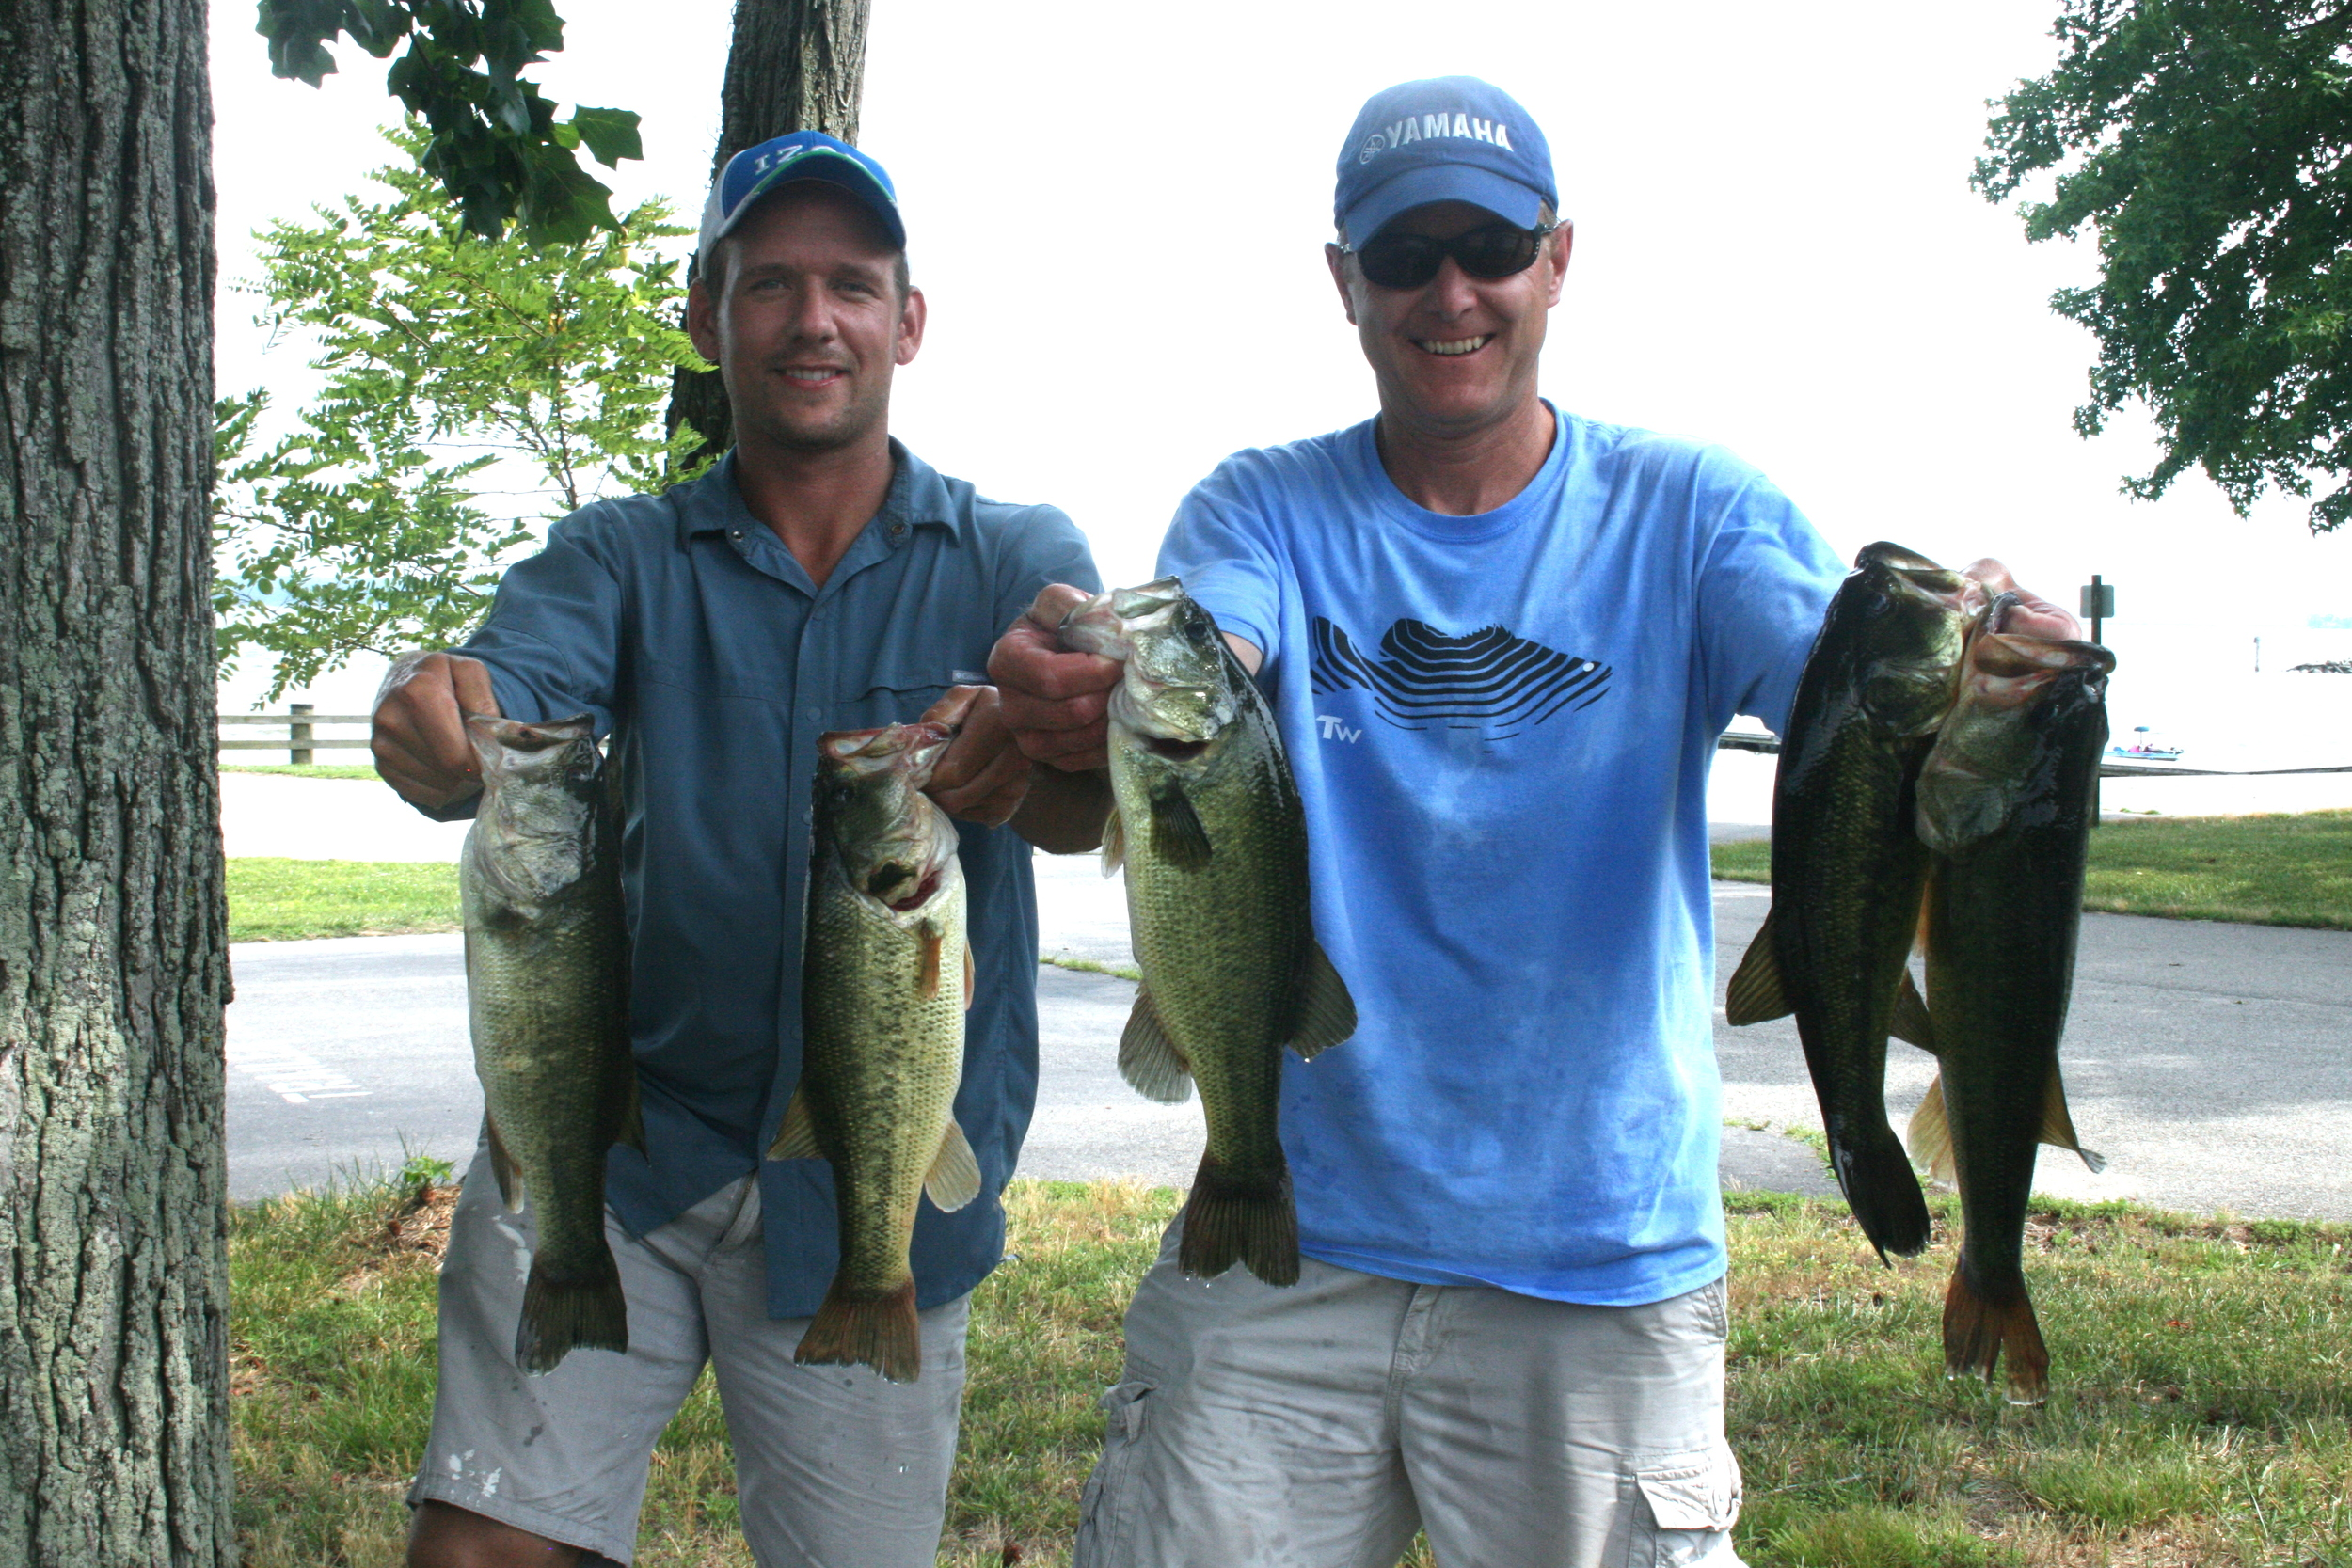 Michael and Mark Heatwole First Place 12.84 lbs